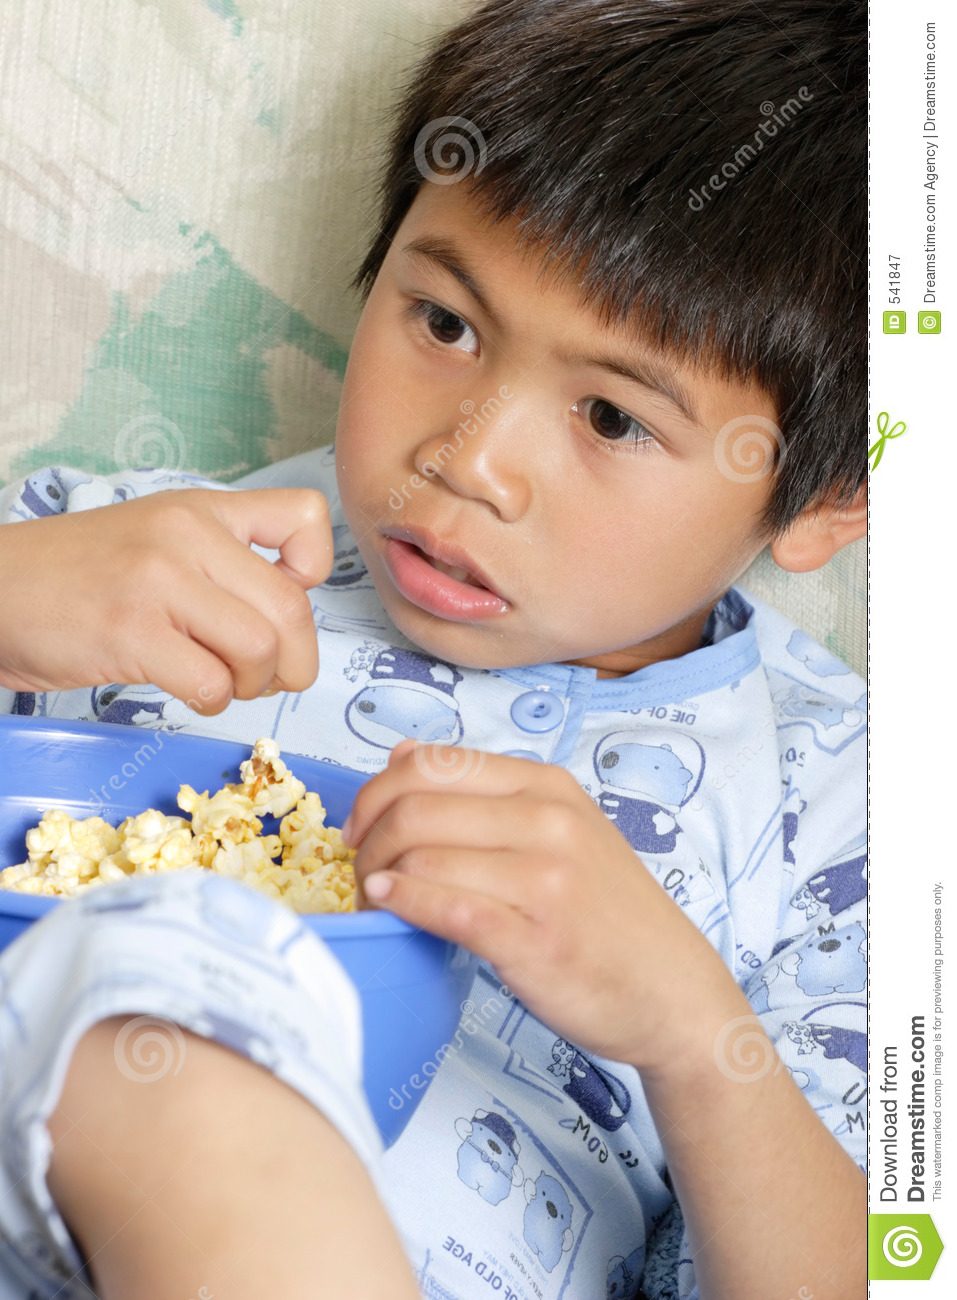 Young boy snacking on popcorn